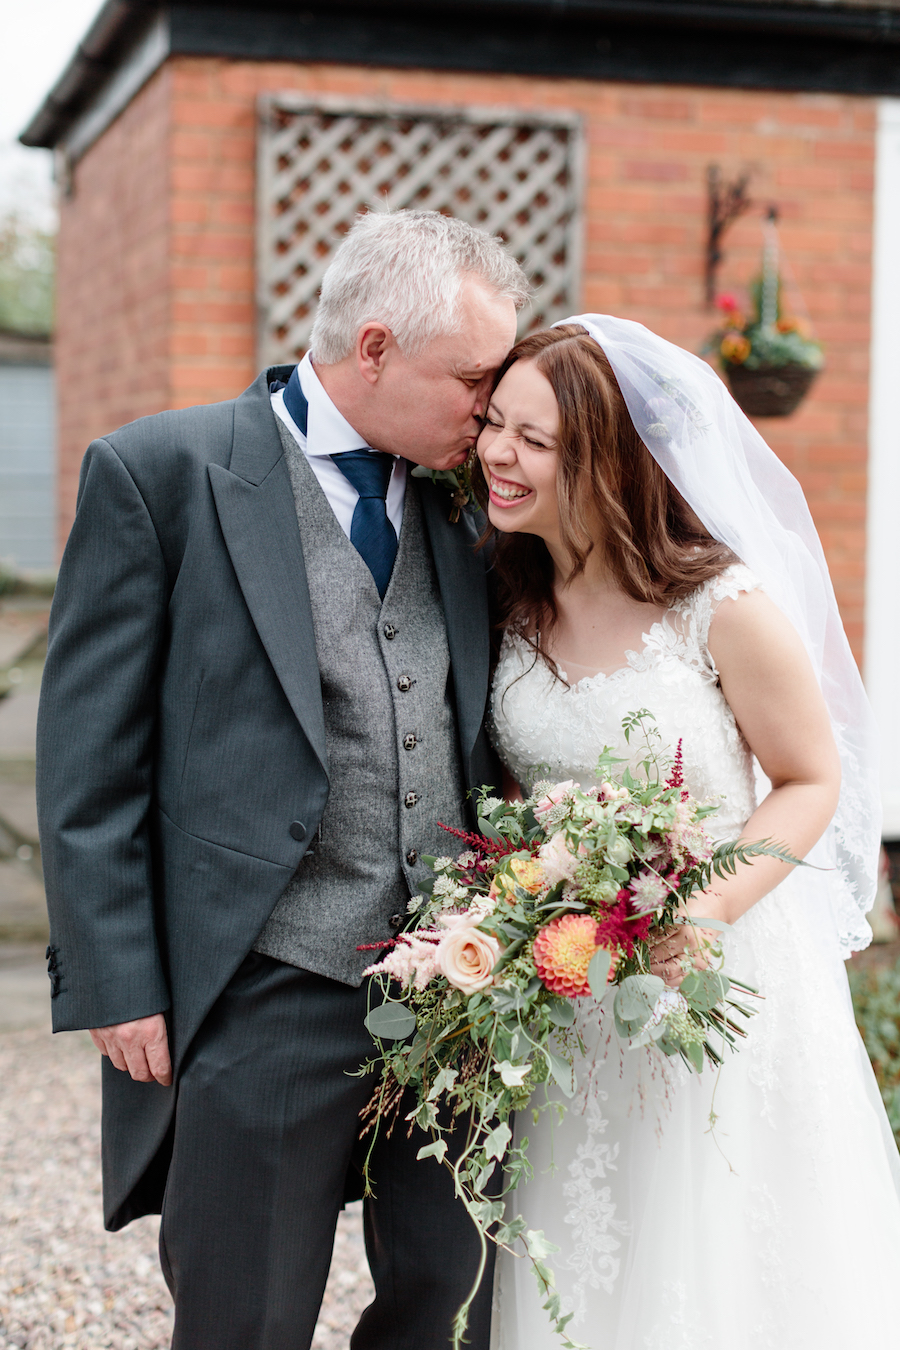 English summer wedding at Alveston Pastures, with Hannah K Photography (5)